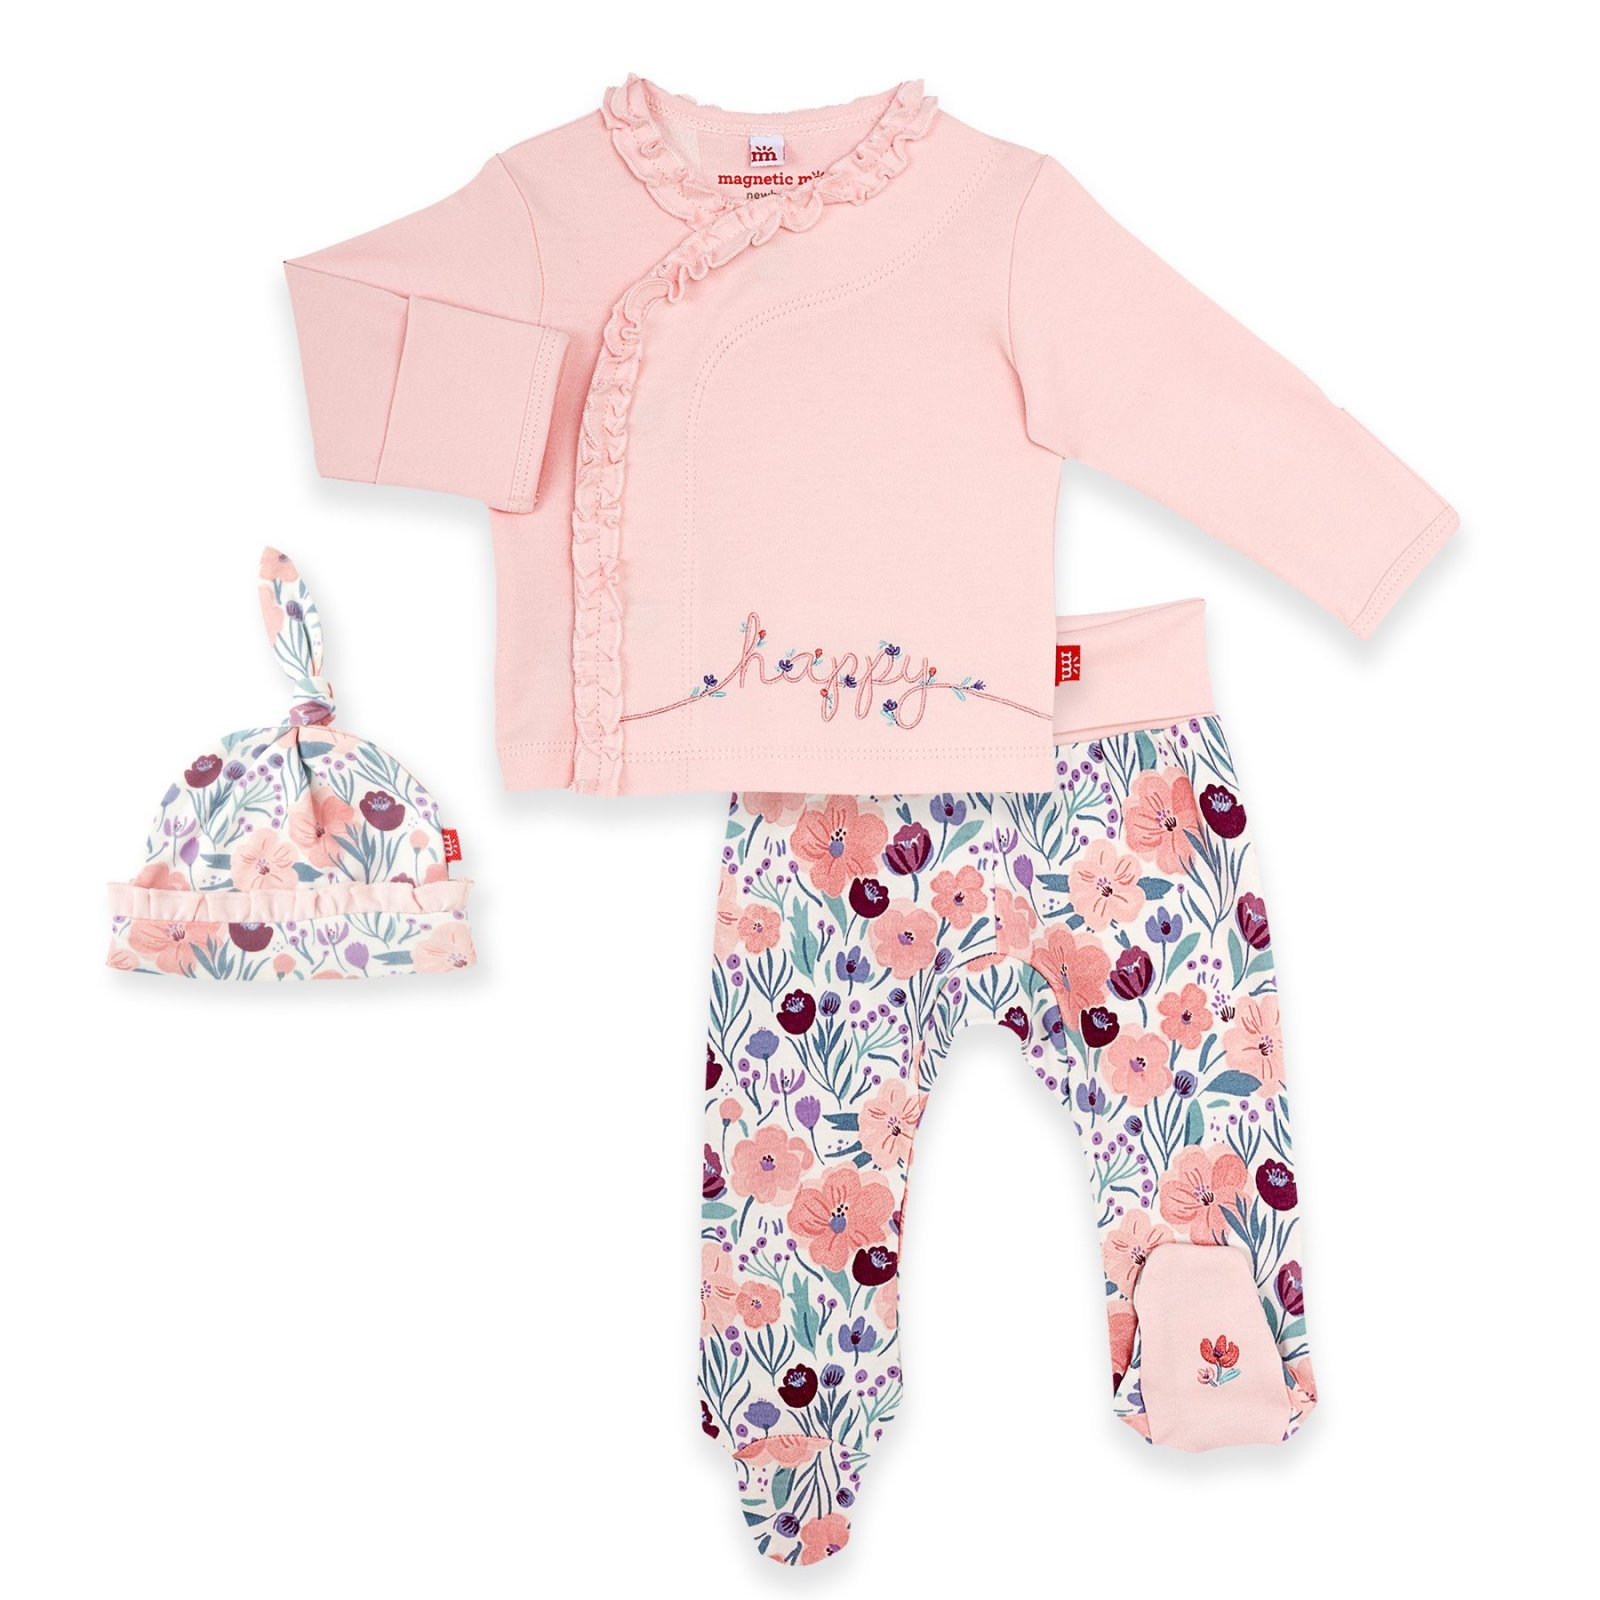 Mayfair Organic Cotton Kimono Set